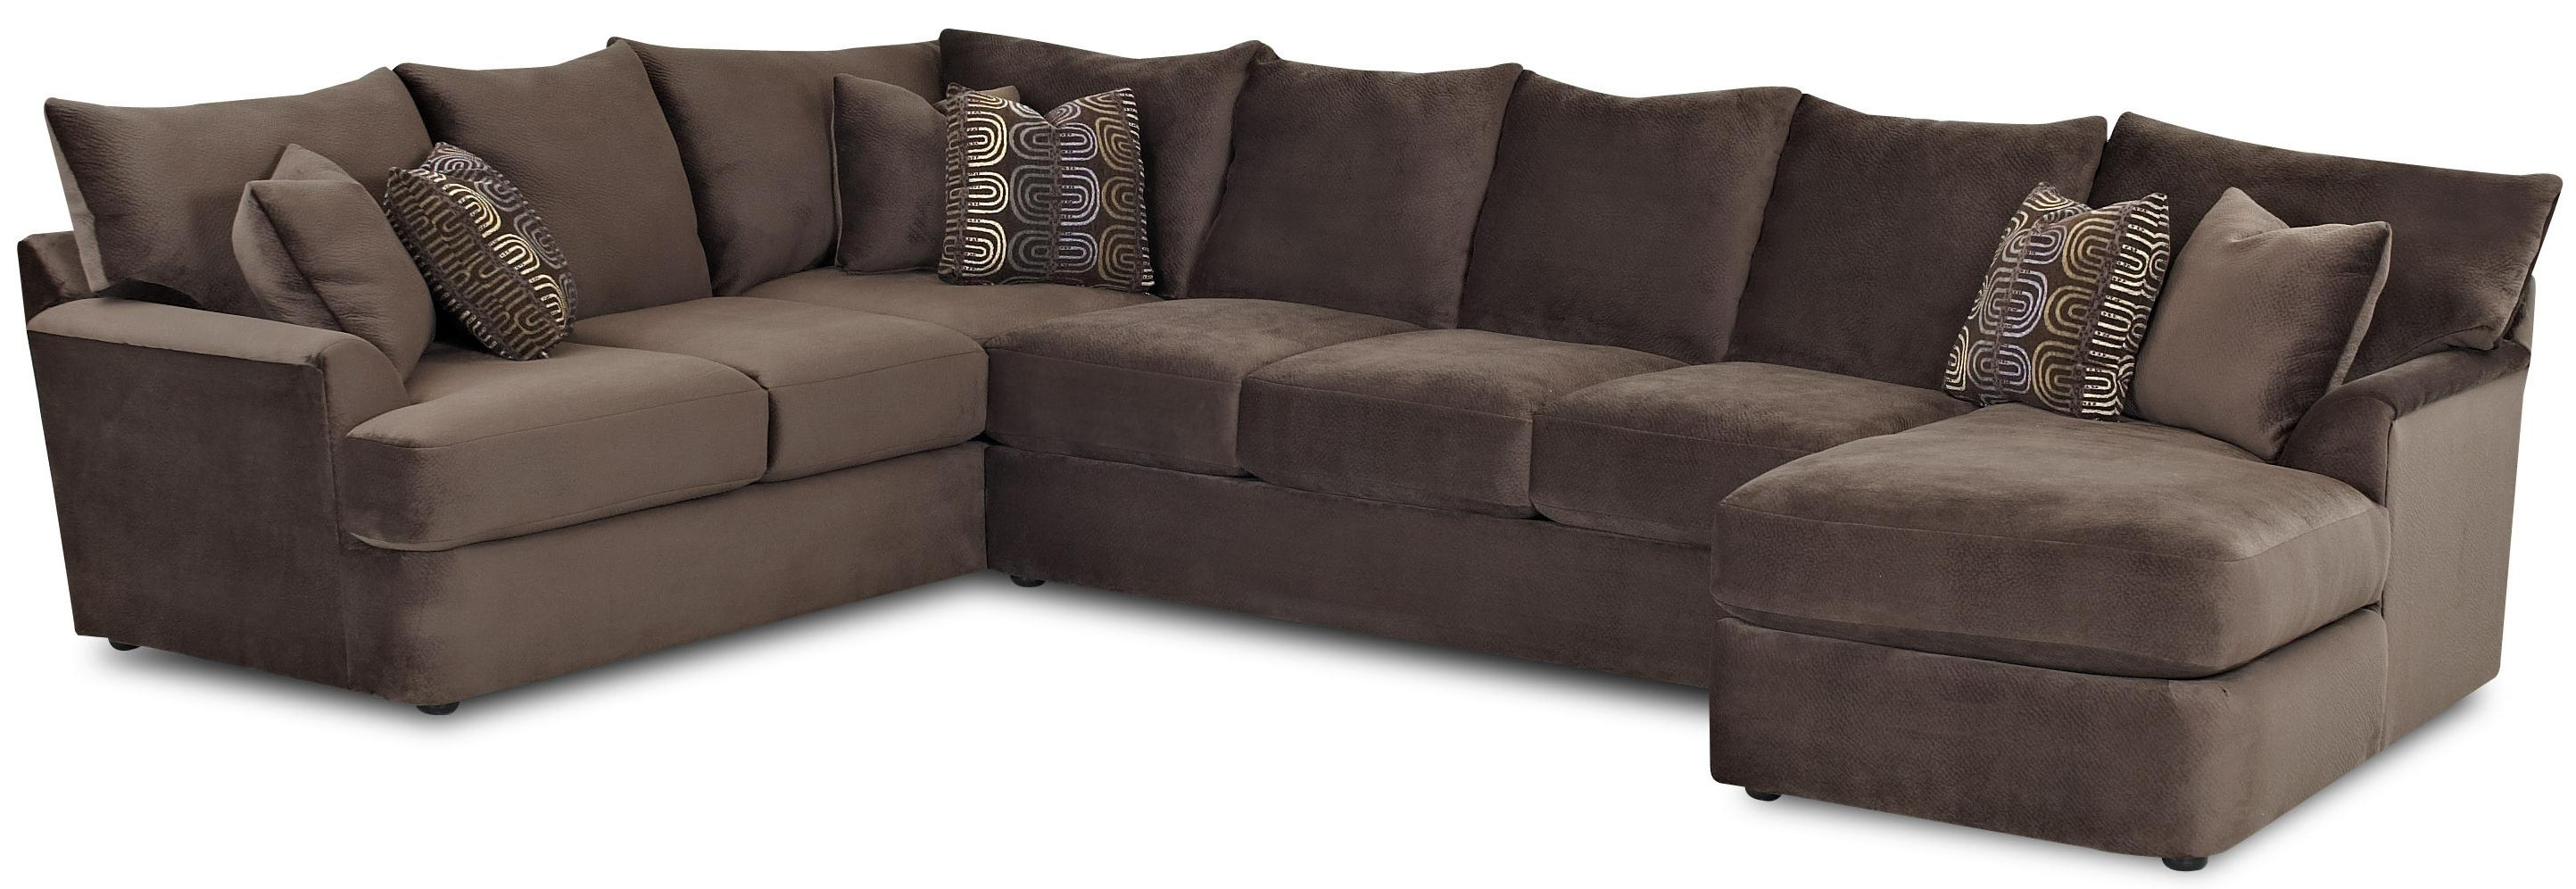 Most Current L Shaped Sectional Sofa With Left Chaiseklaussner (View 13 of 15)